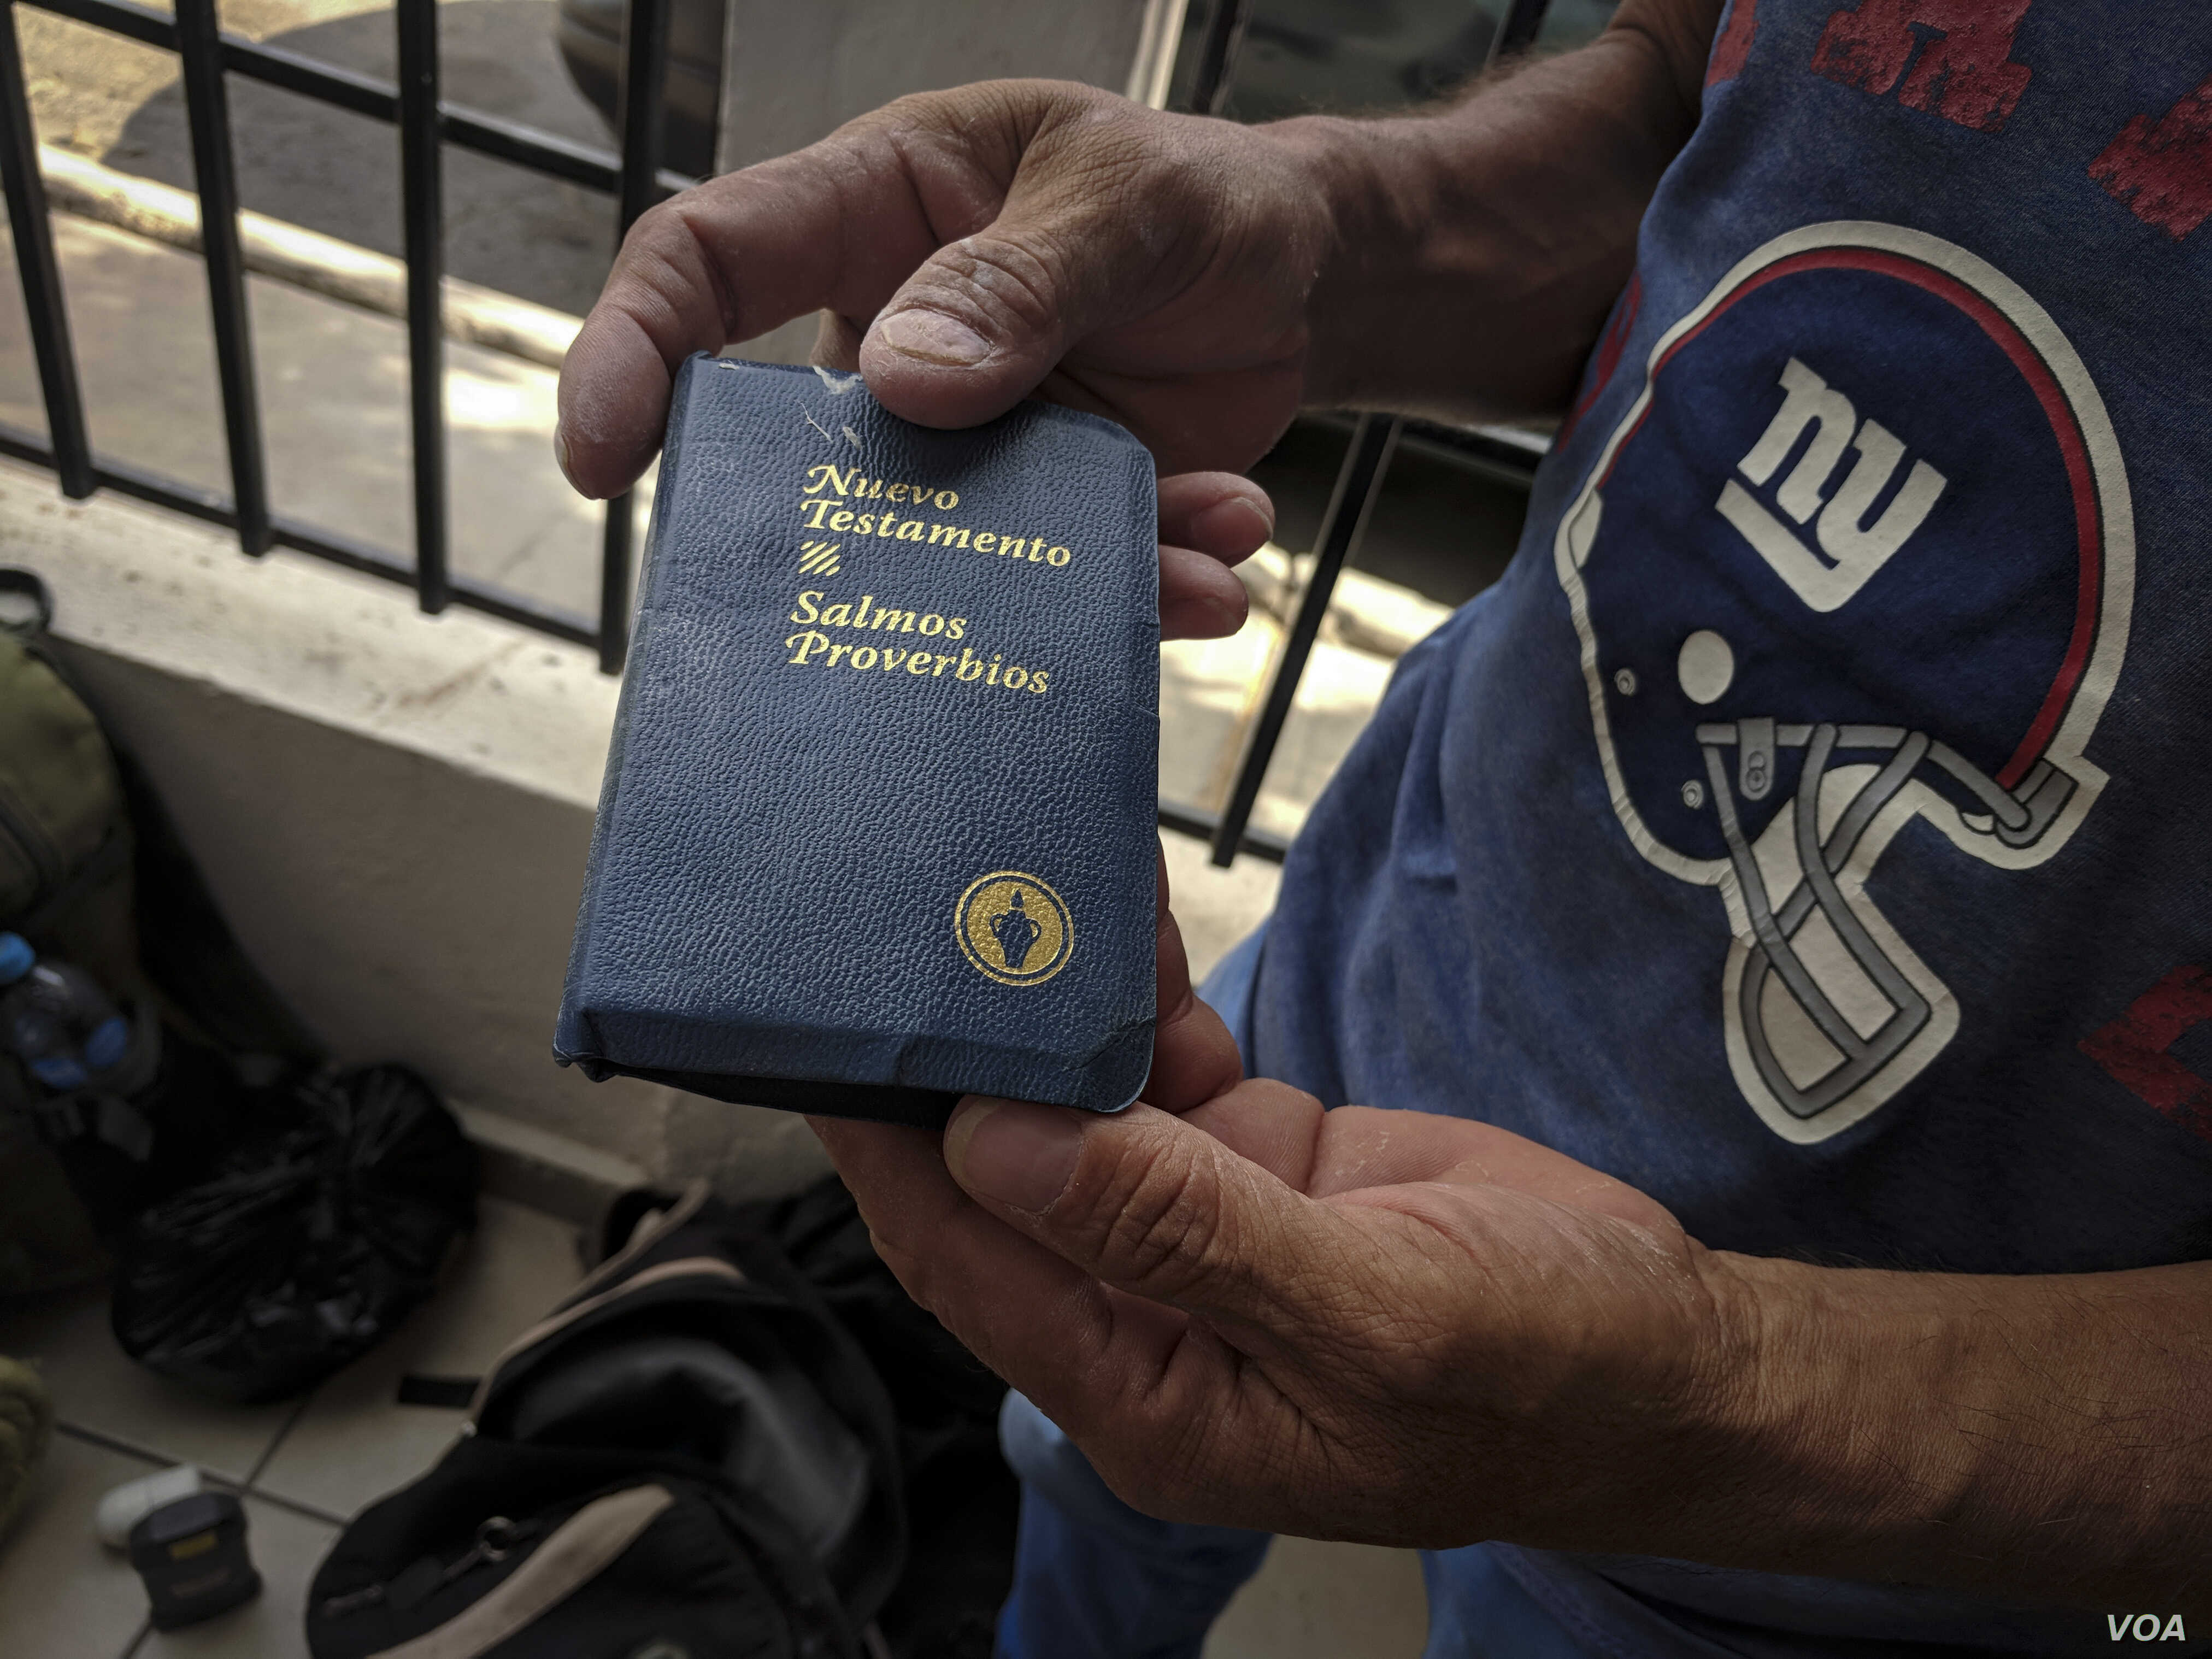 New Testament - Mario Hernandez holds up a copy of the New Testament, one of the few items he carried with him on his journey north, from Chiquimulilla, Guatemala, to Mexicali, Mexico. (R. Taylor/VOA)